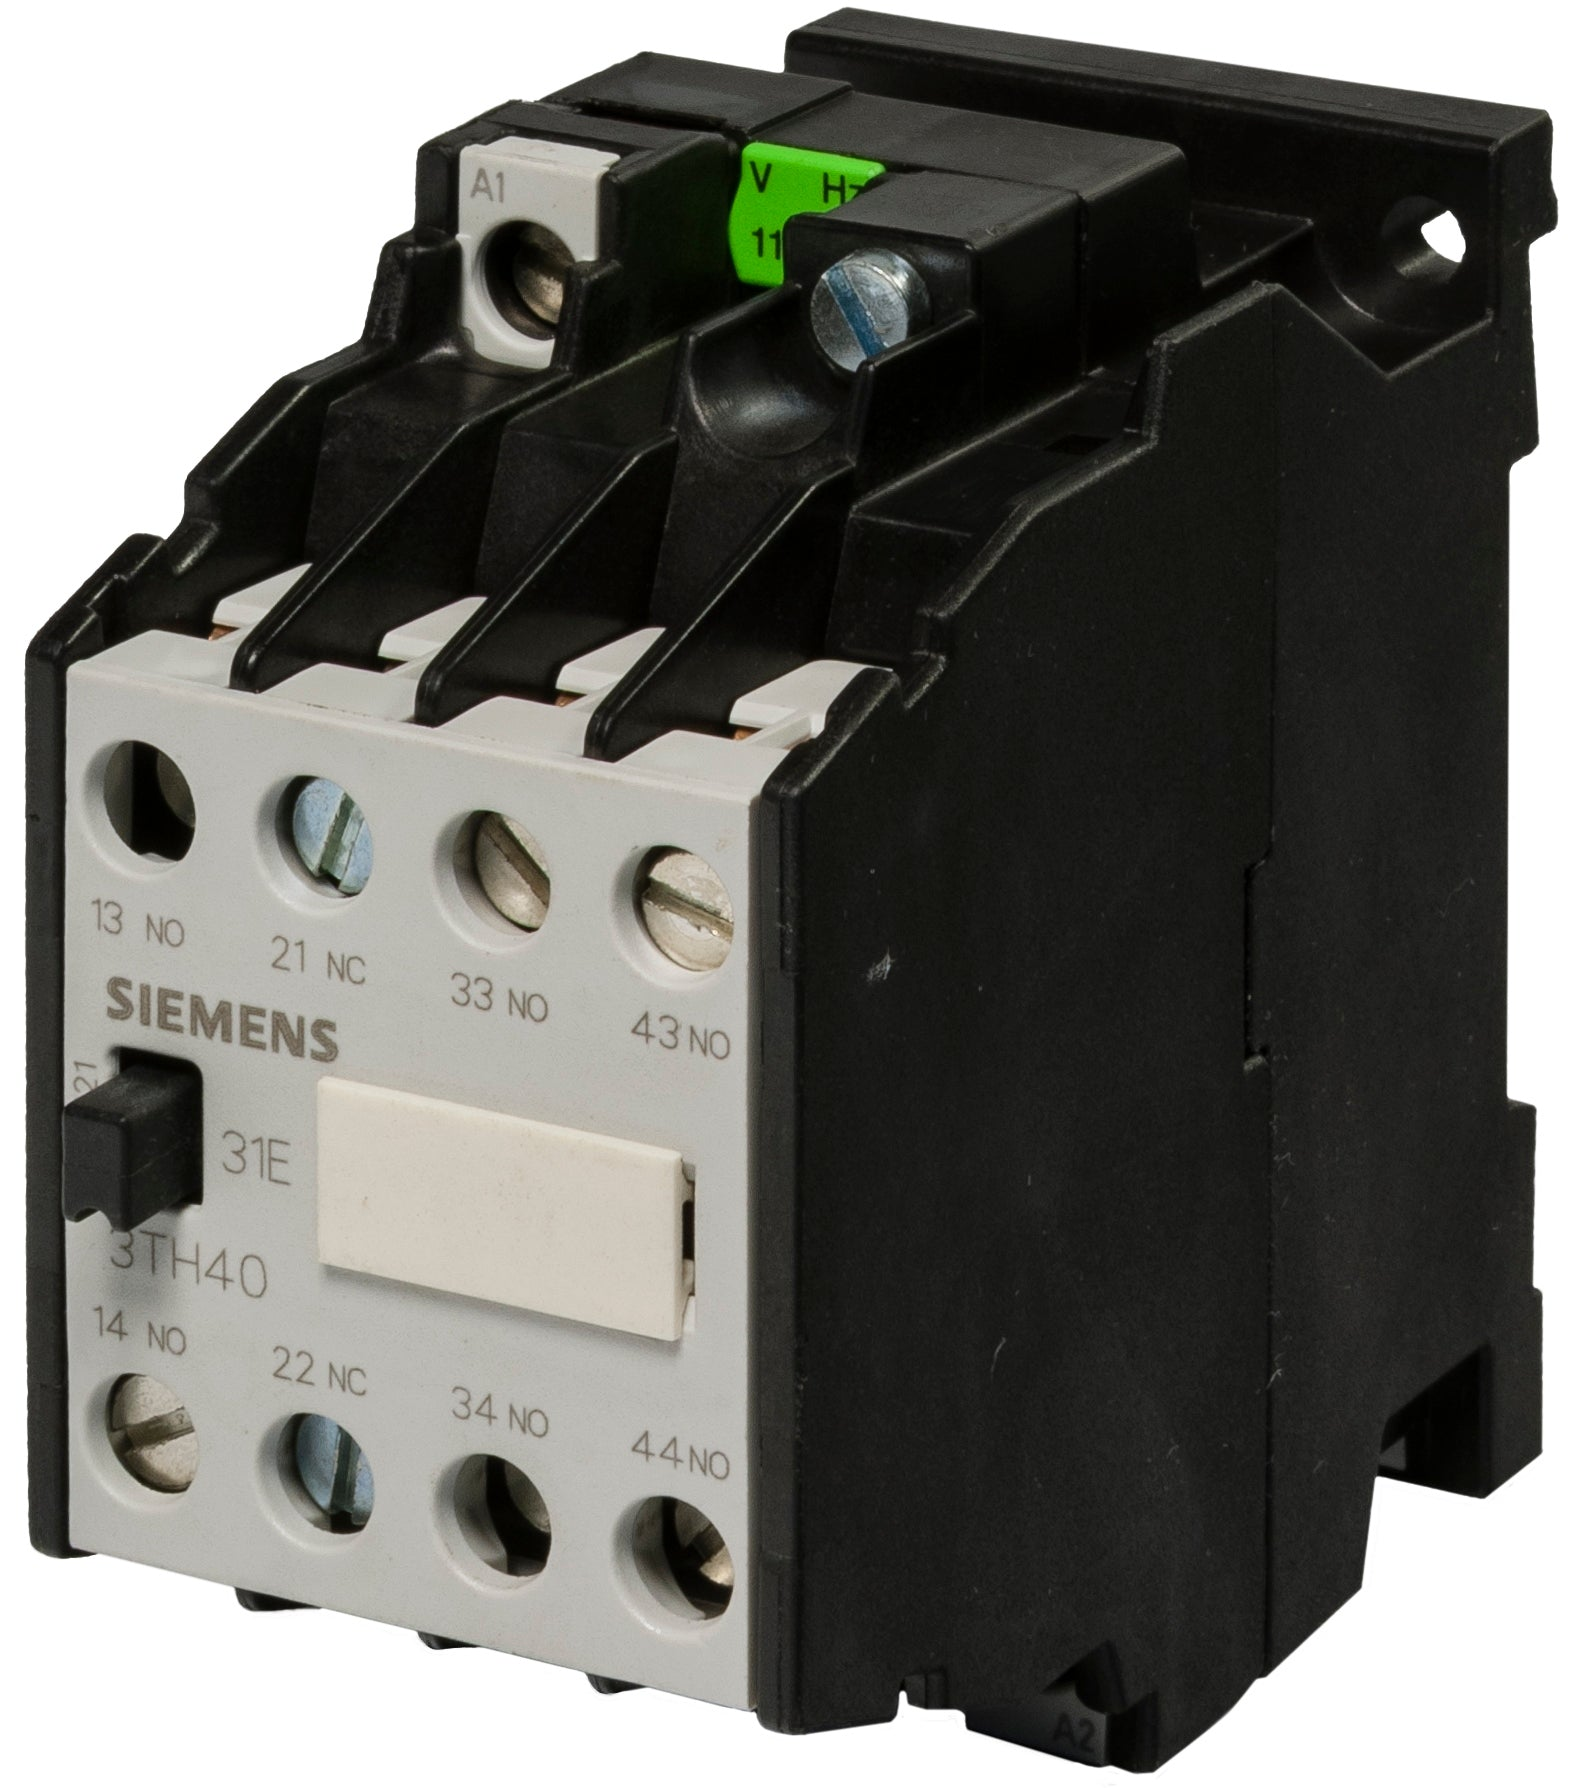 3TH4031-0A Siemens Control Relay